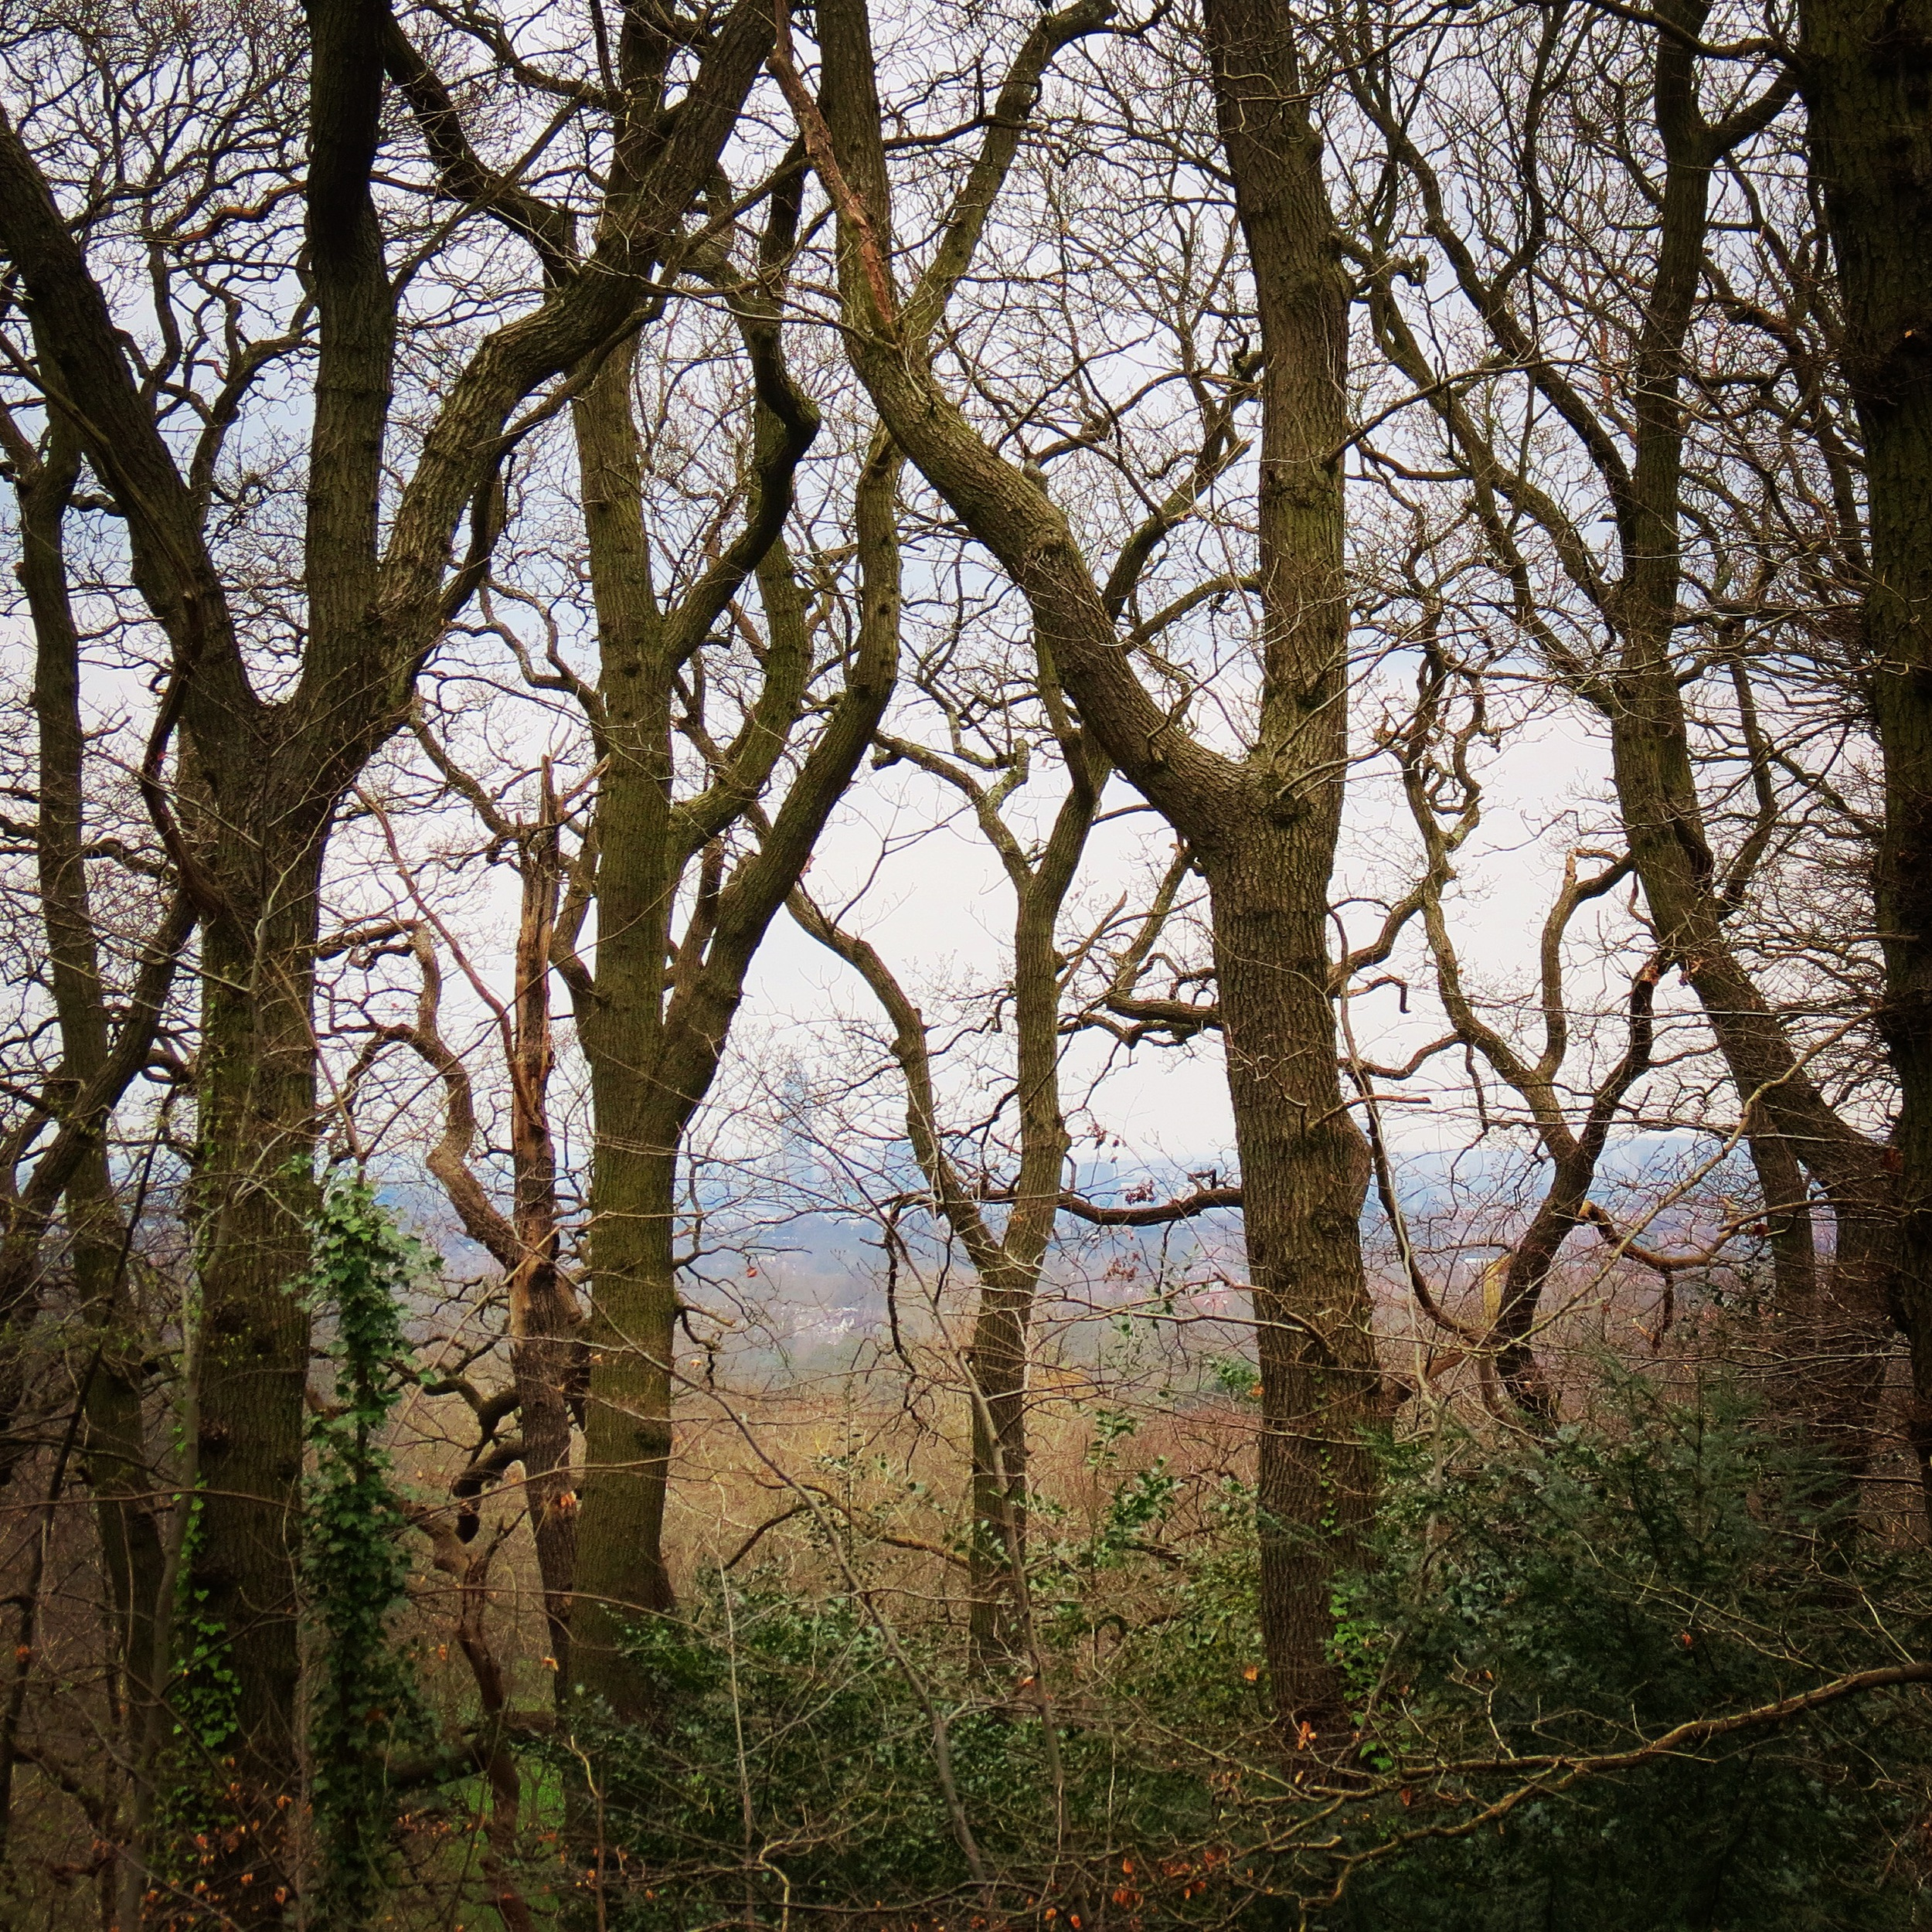 The city seems far from Sydenham Hill woods